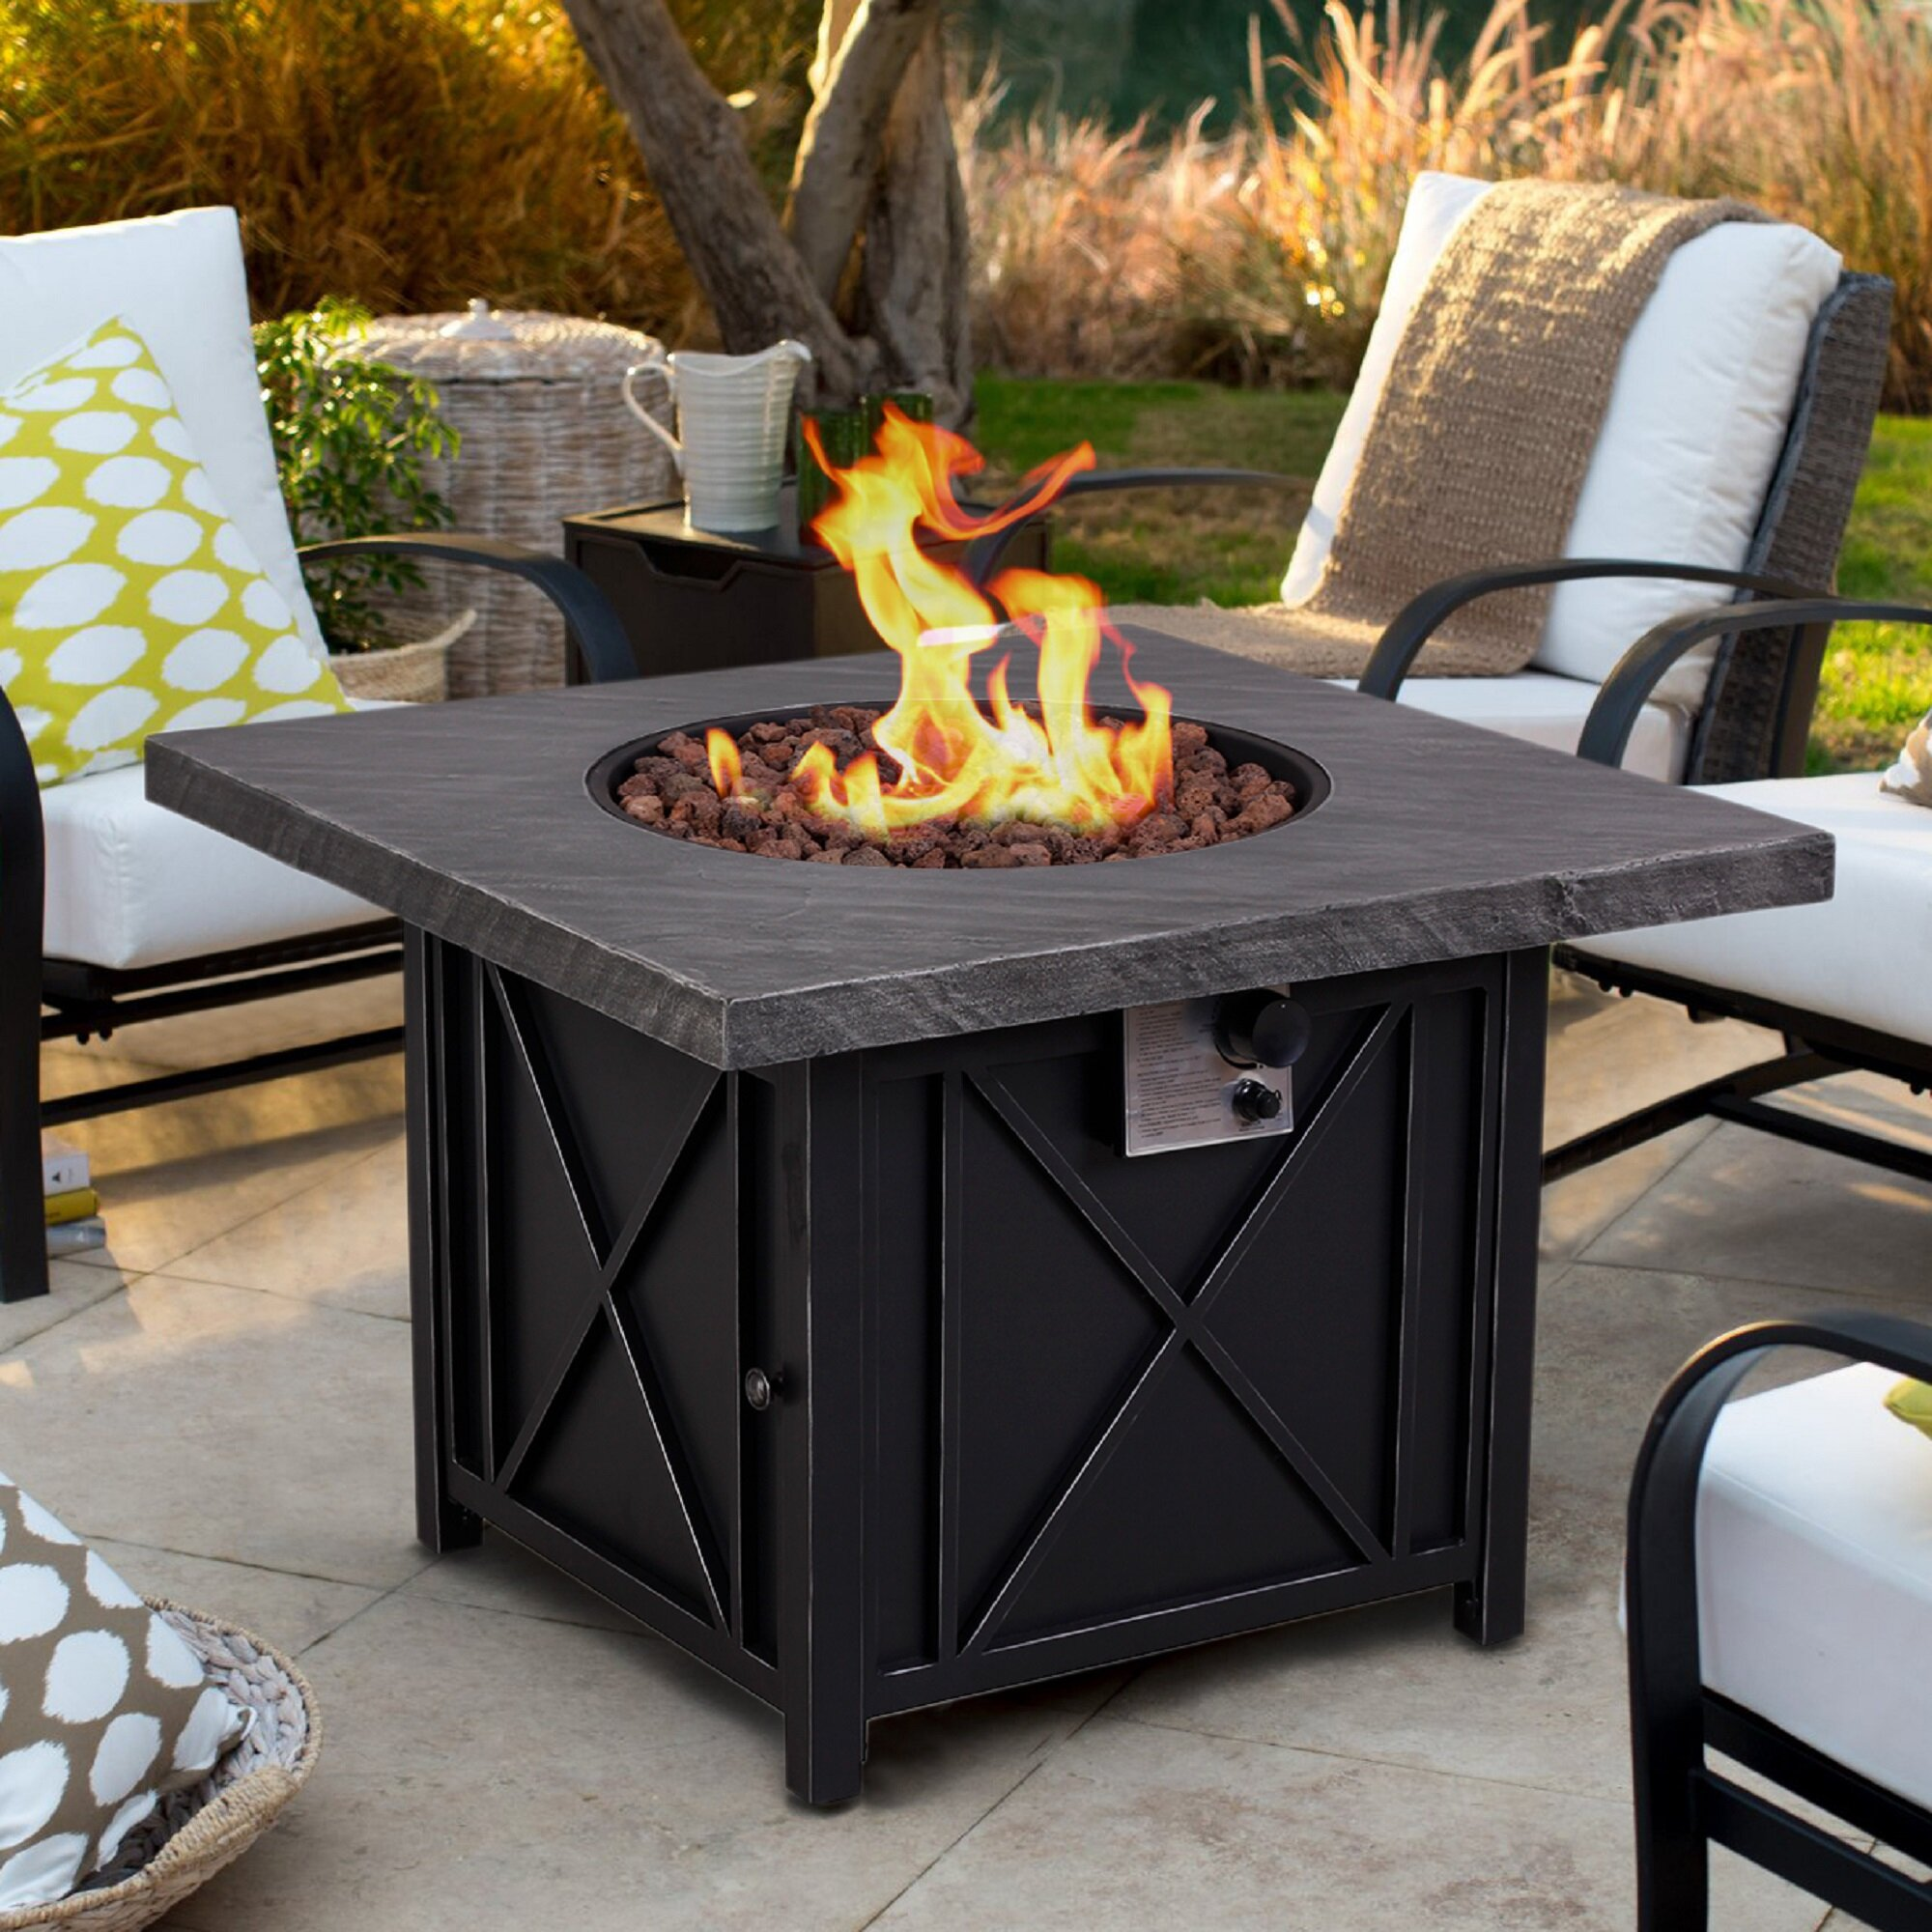 Arlmont Co Onondaga Steel Propane Fire Pit Wayfair